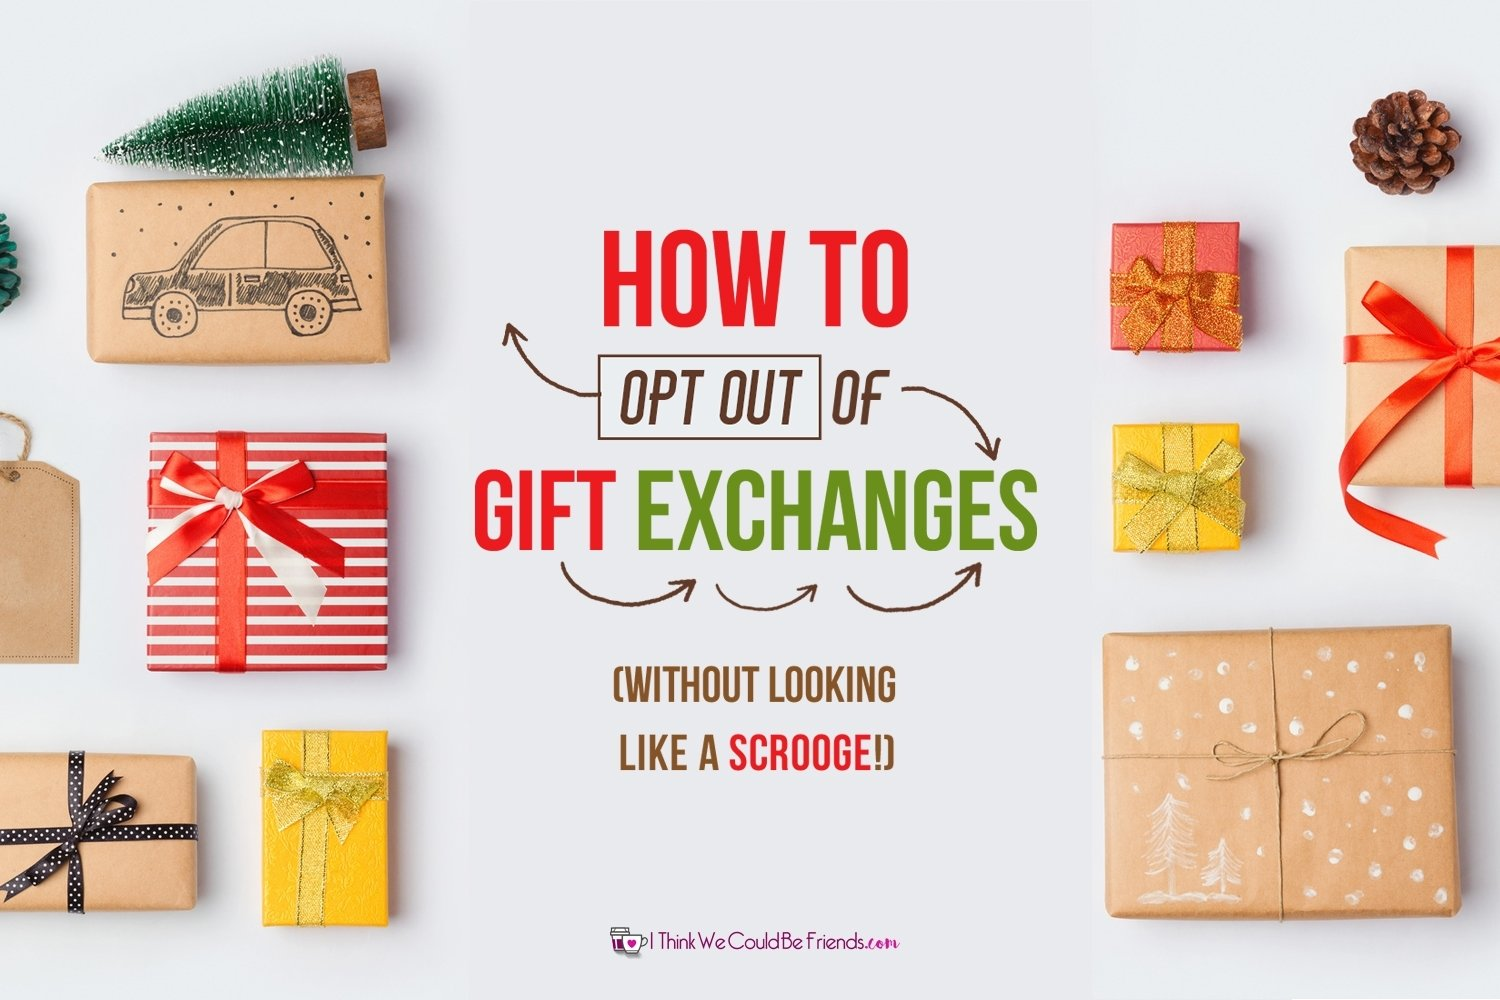 10 Stunning Office Christmas Gift Exchange Ideas how to get out of christmas gift exchanges and not look like a